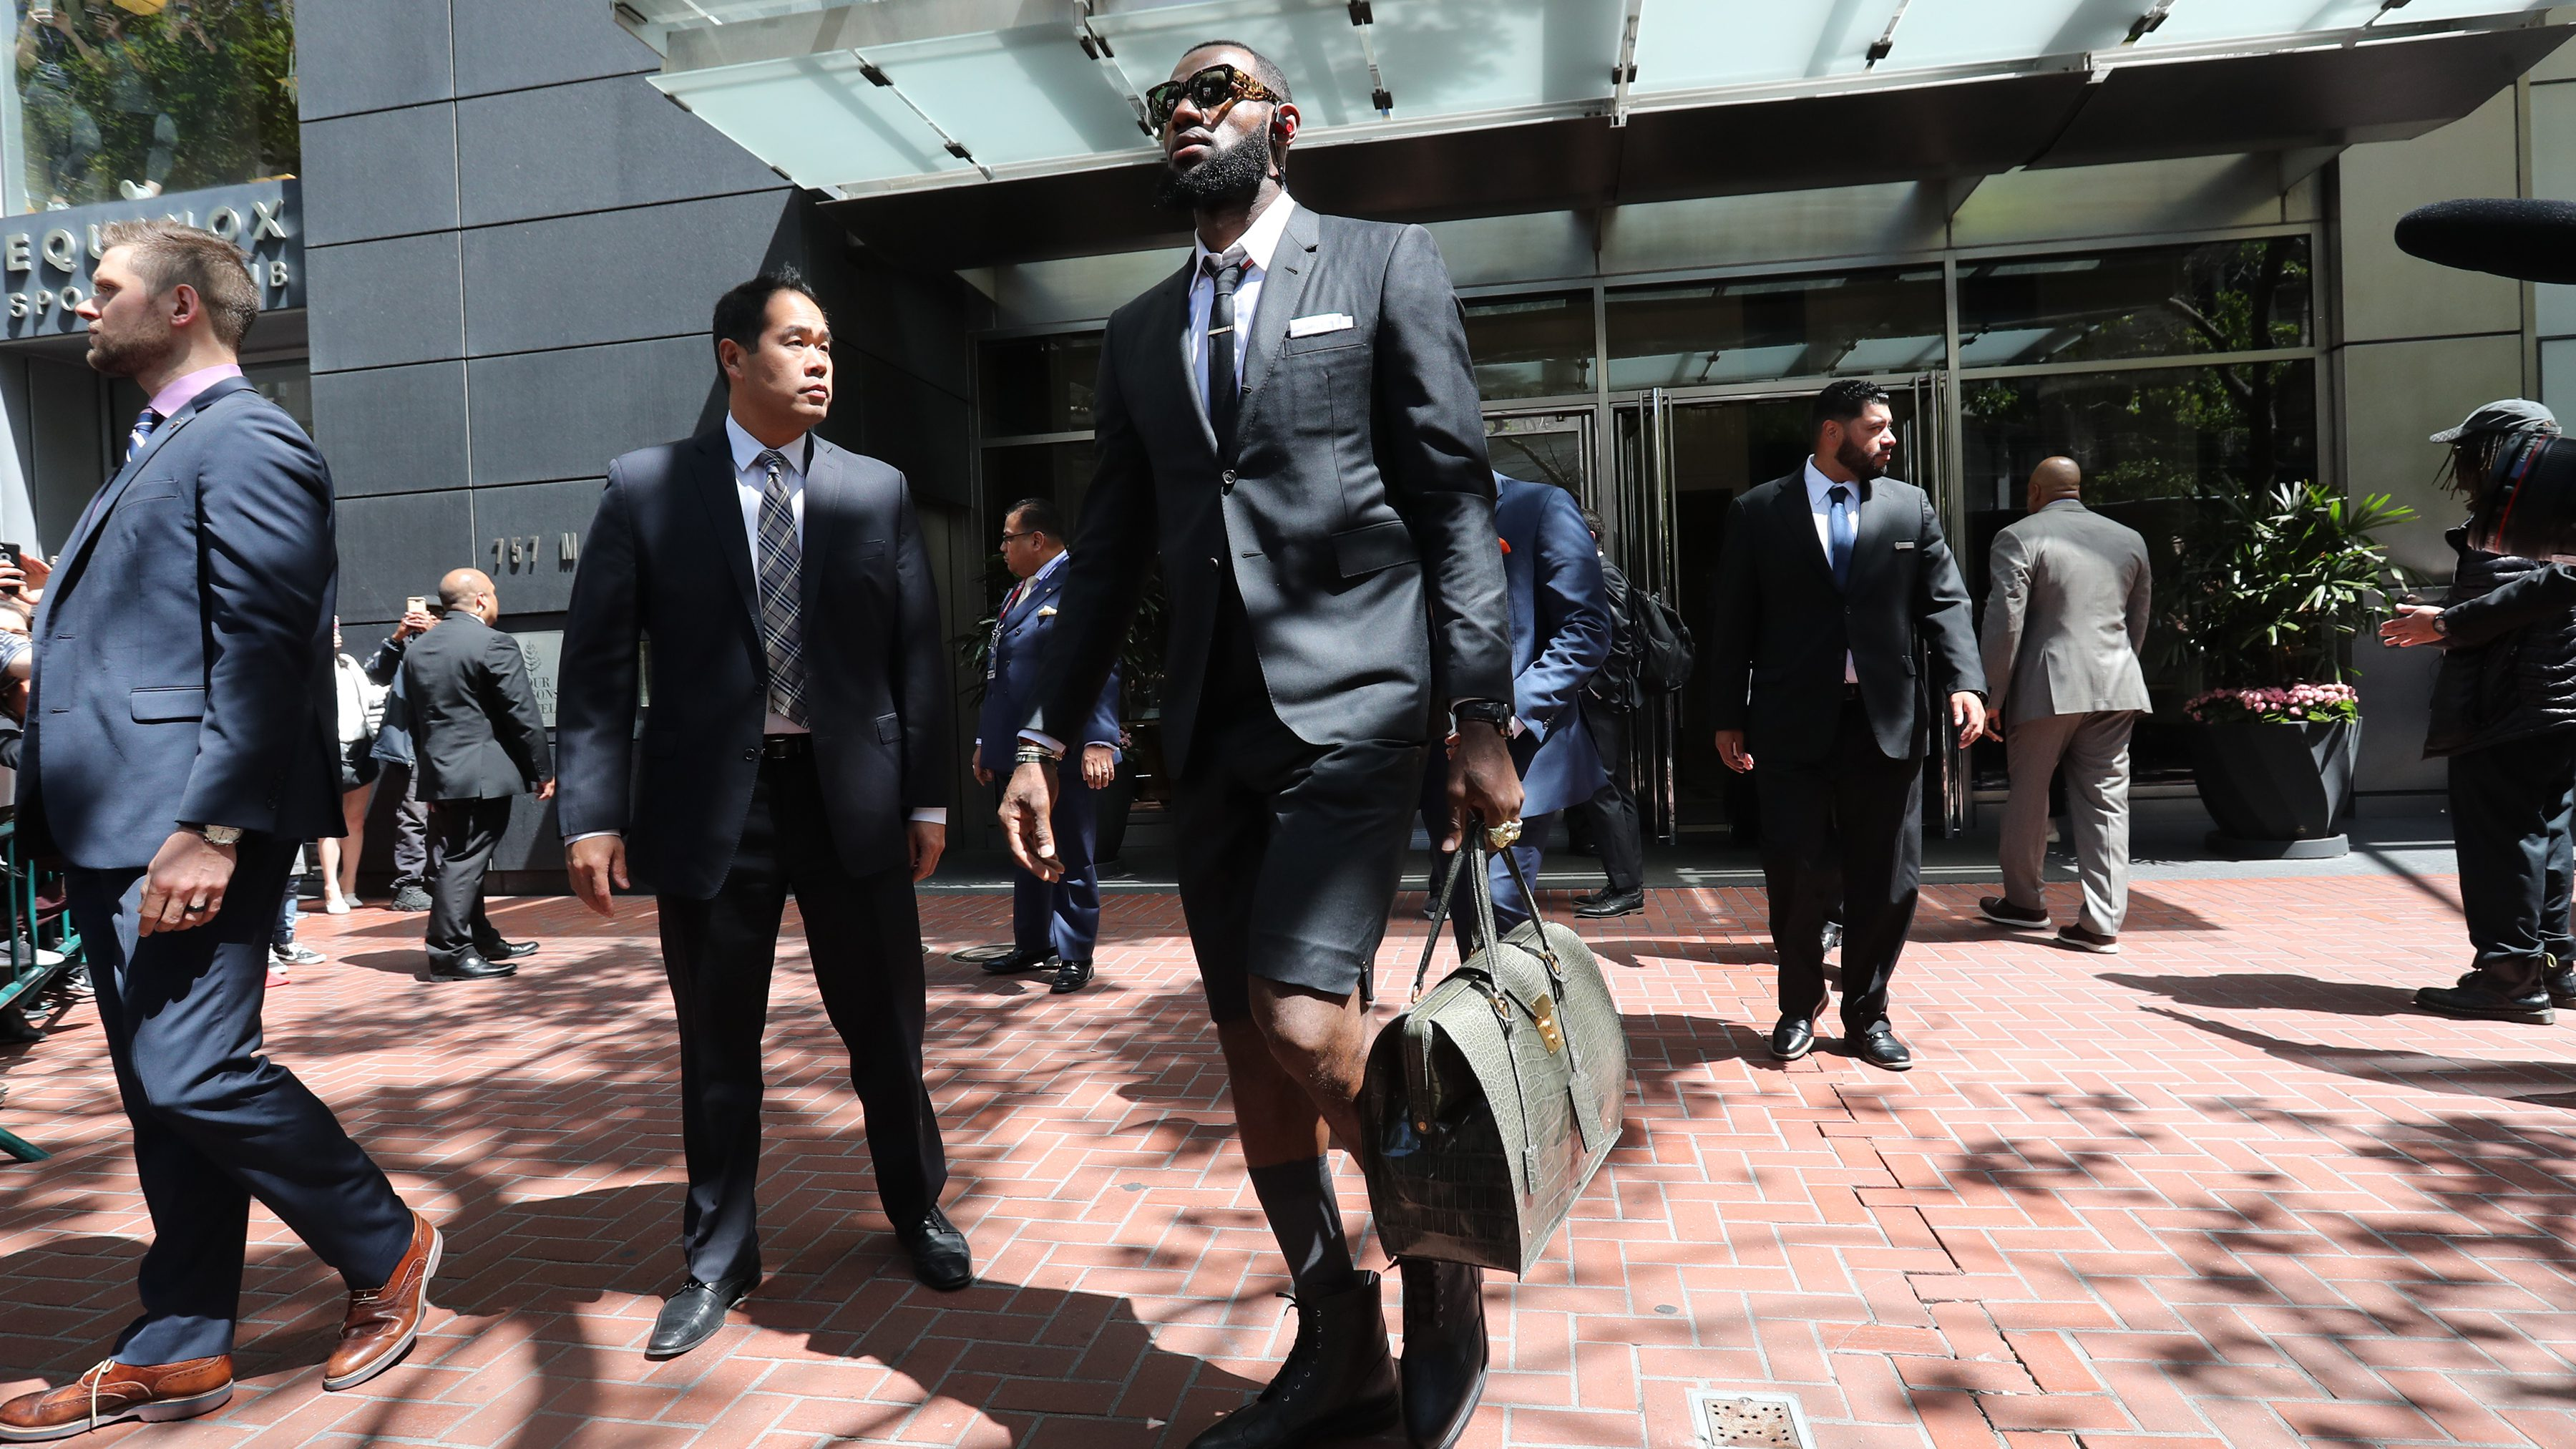 Lebron James Game 1 Outfit And Accessories Cost More Than 45 000